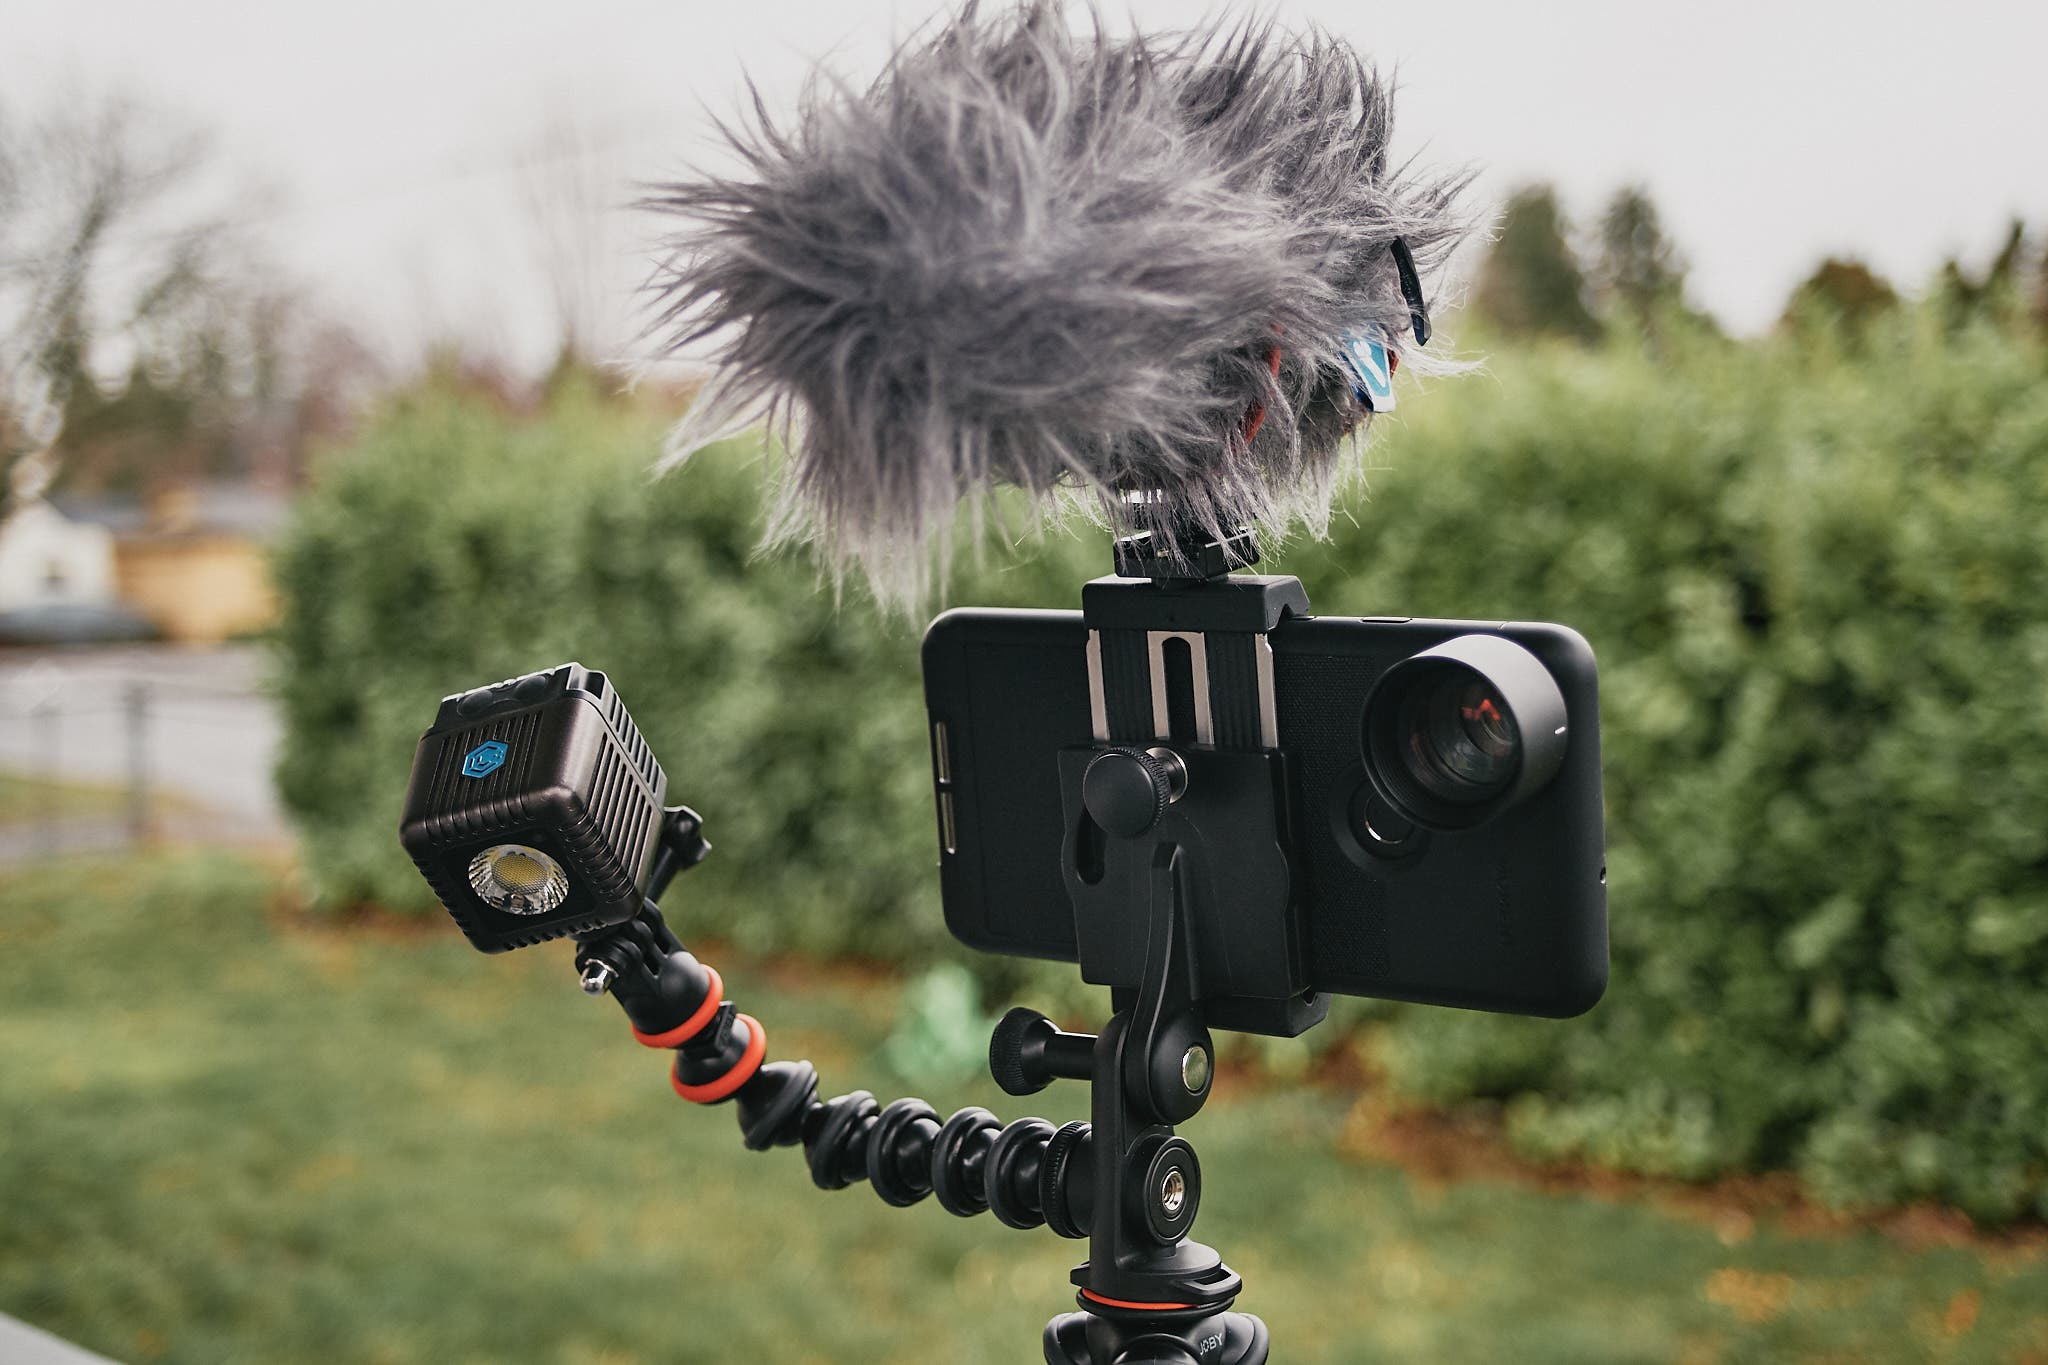 REVIEW: Joby Gorillapod Mobile Rig